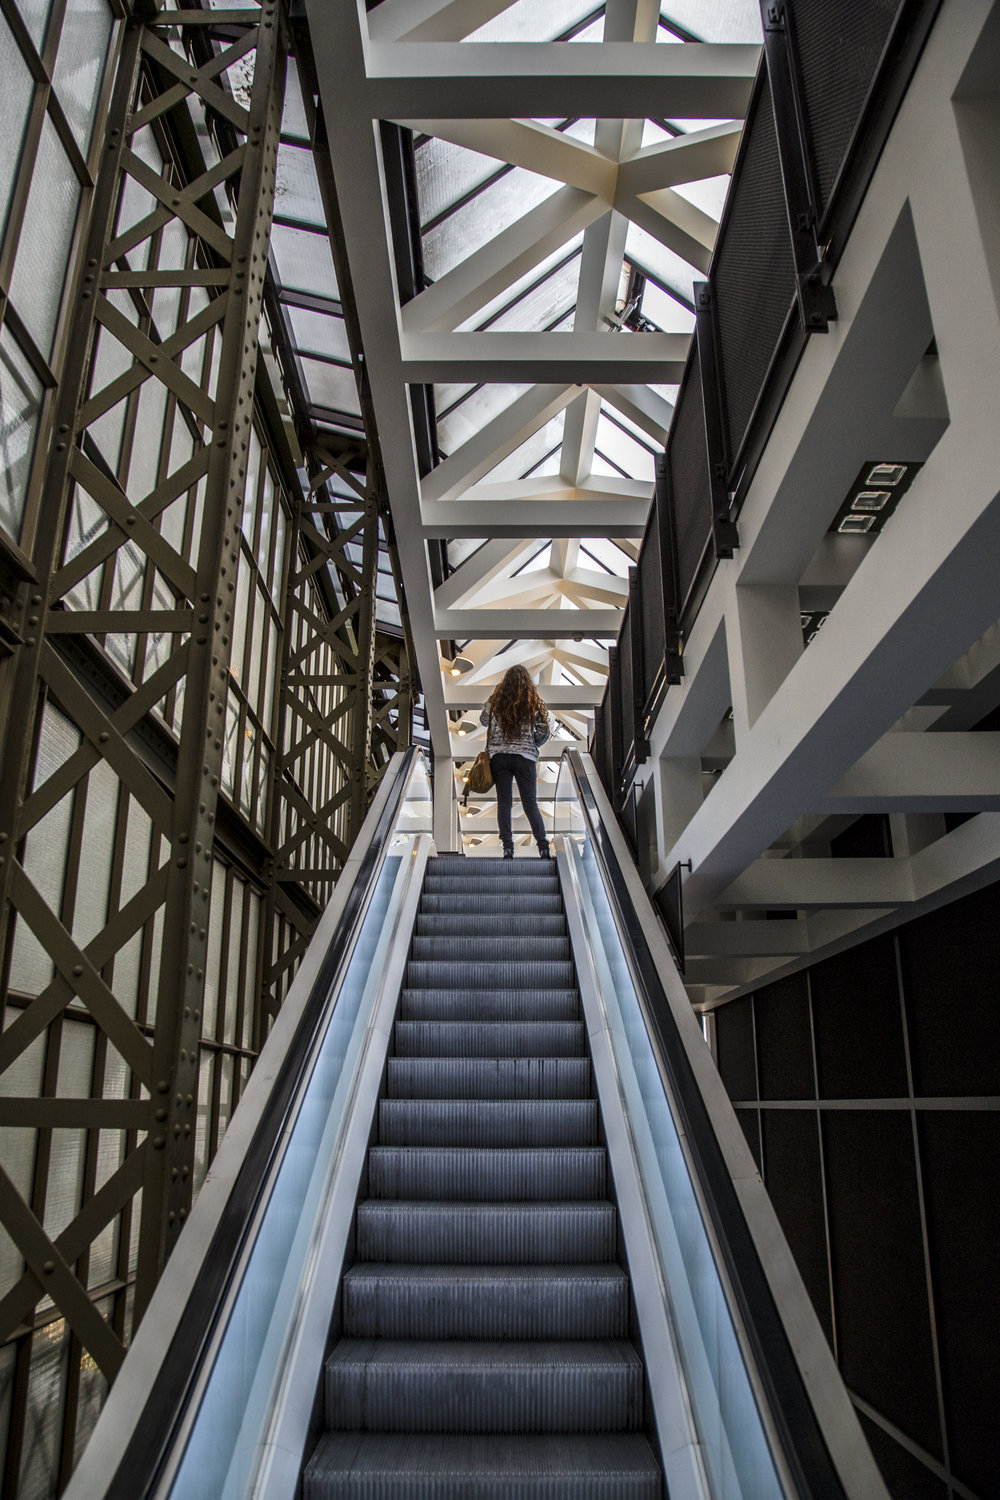 A woman ascends to the fifth floor on an escalator at the Musee D'Orsay in Paris, France.